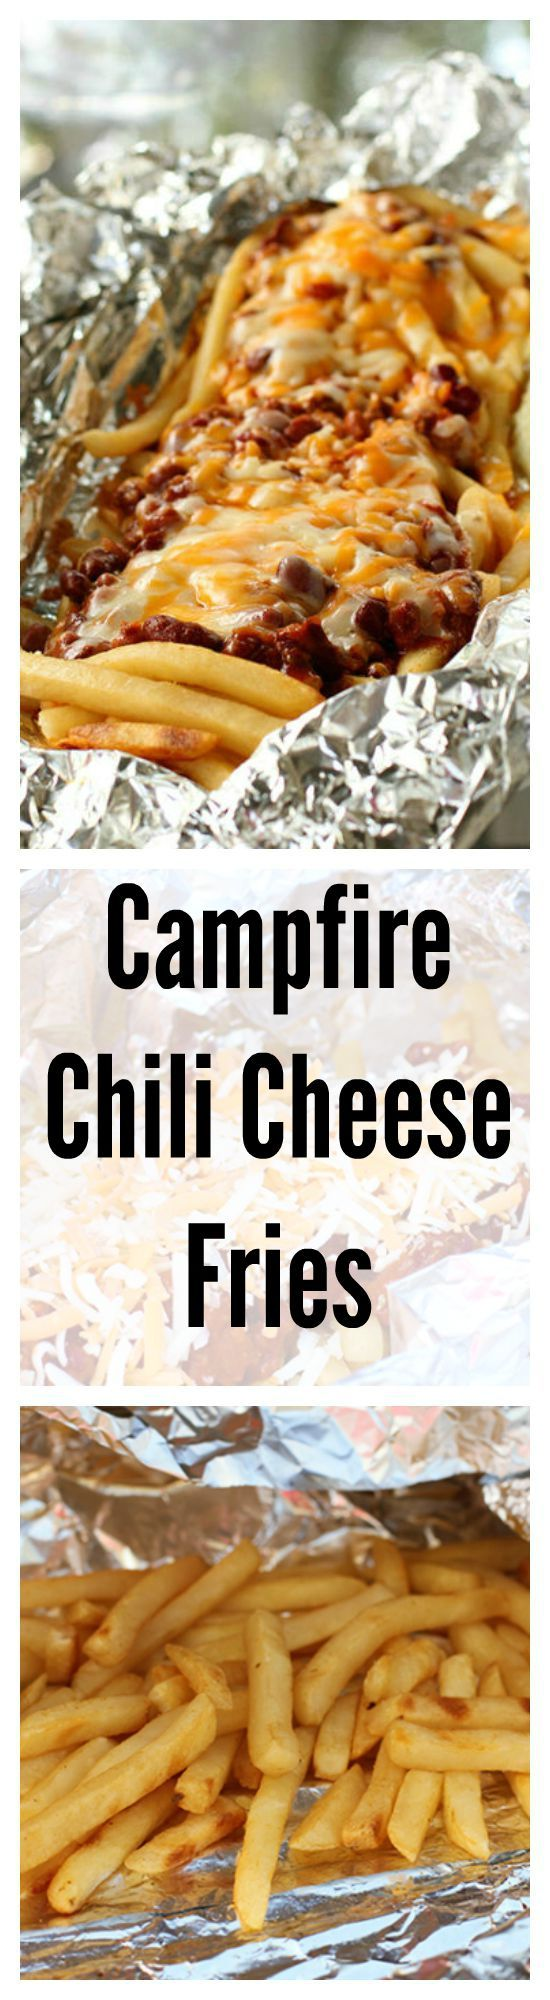 28 Easy Summer Campfire Recipes That Arent Smores Camping StuffCamping Food